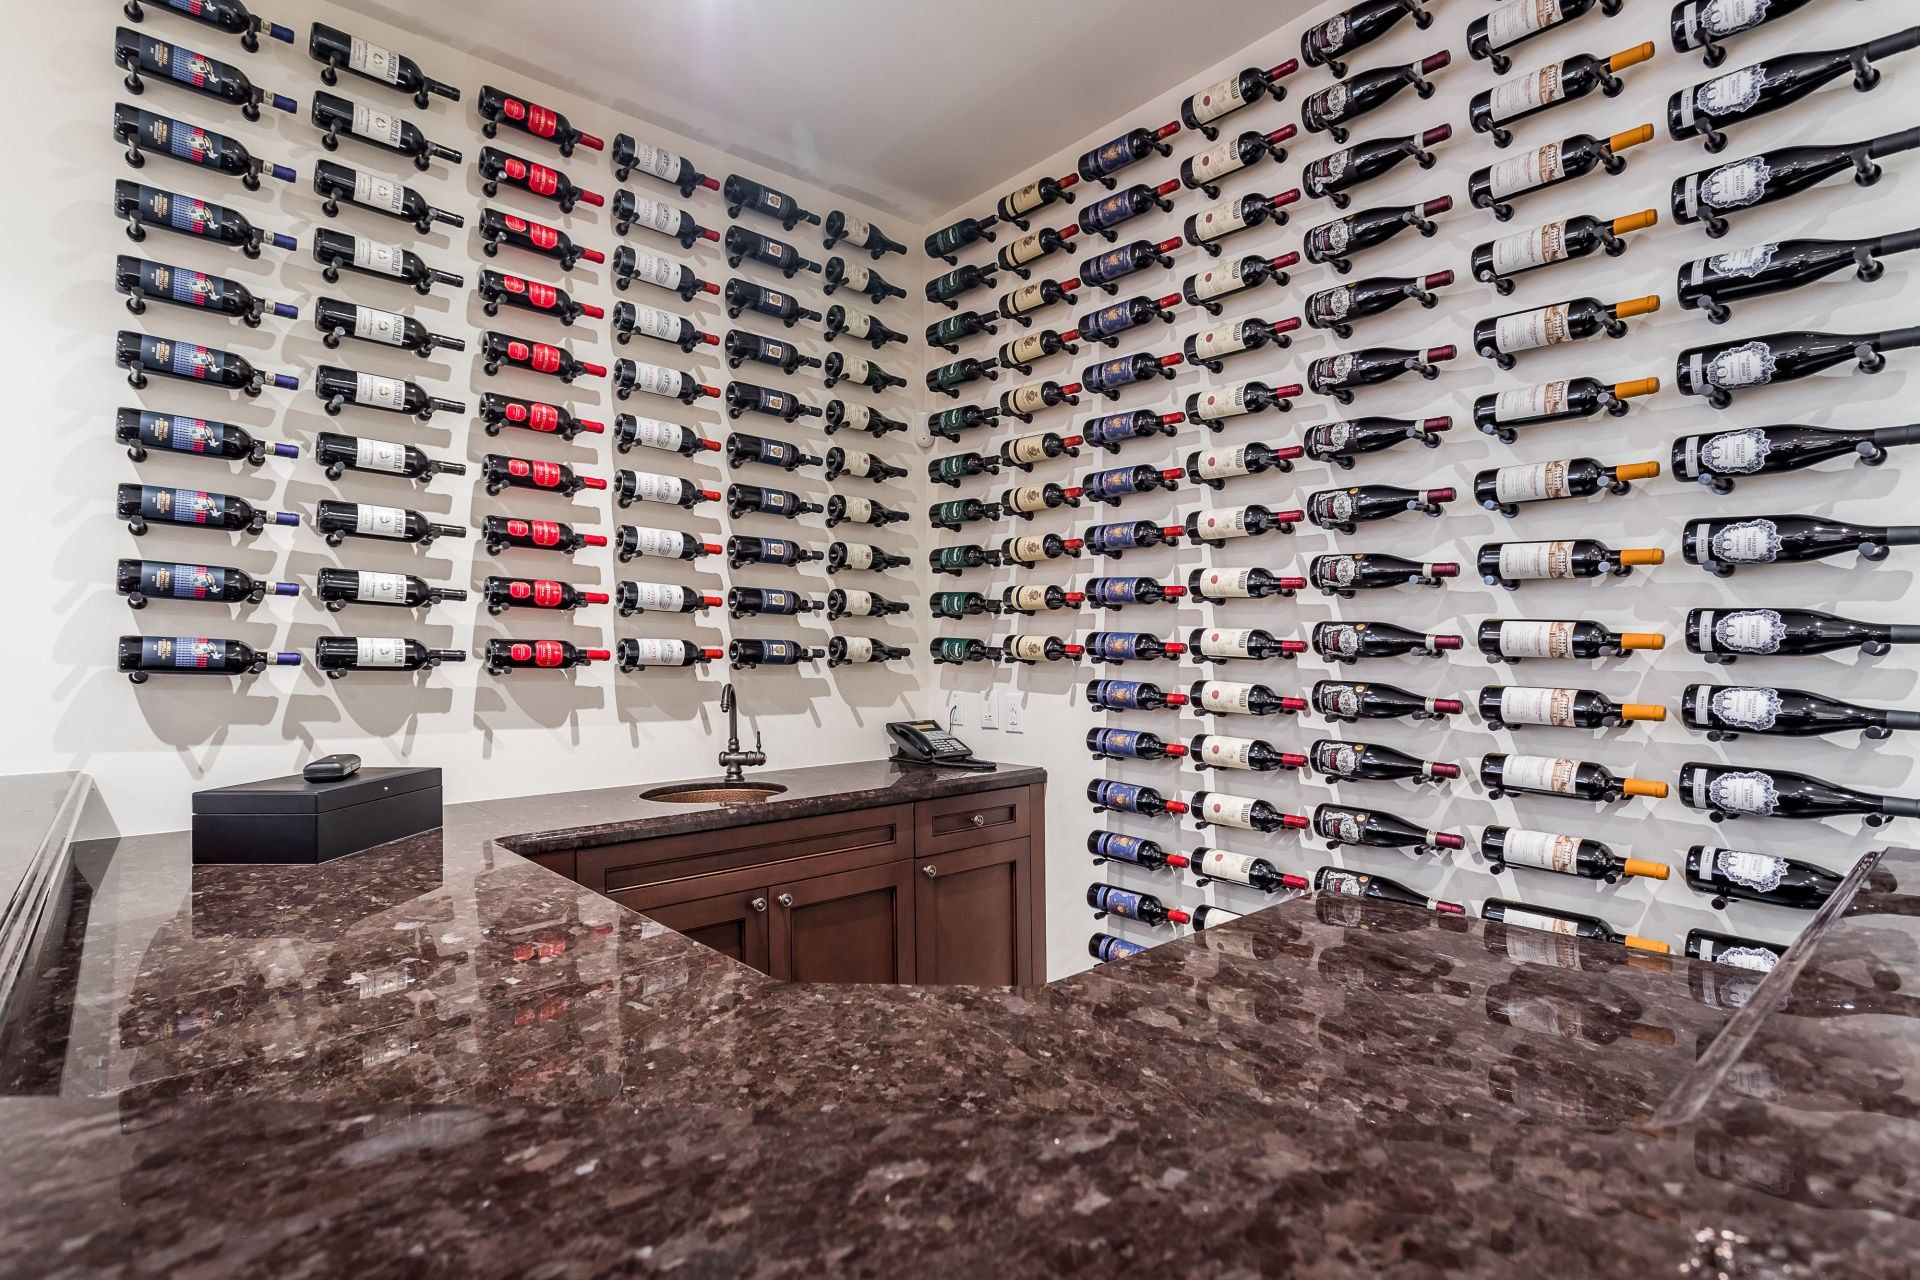 The wet bar and wine storage